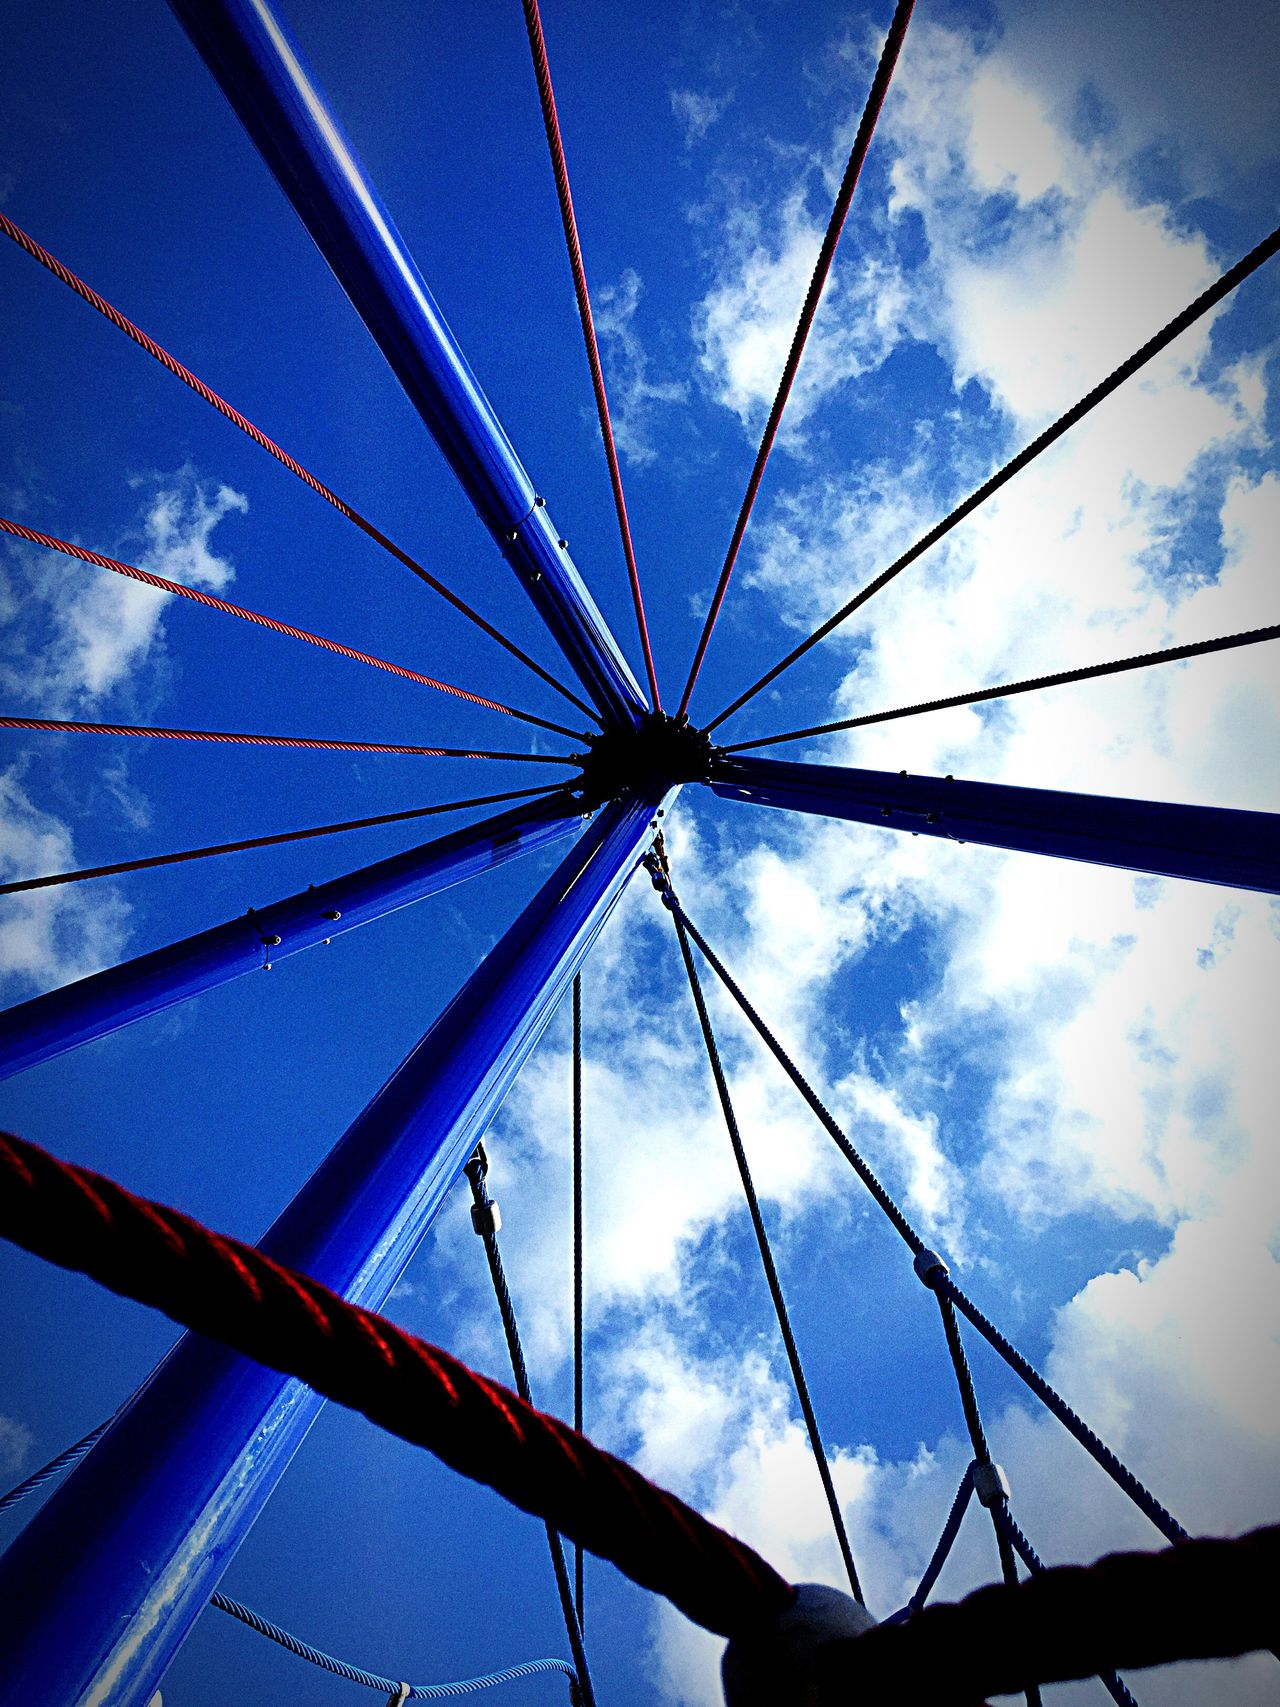 Blue Sky Cloud - Sky No People Low Angle View Day Outdoors Photographing Shot Moment Lens Playground Eye4photography  Urban Exploration